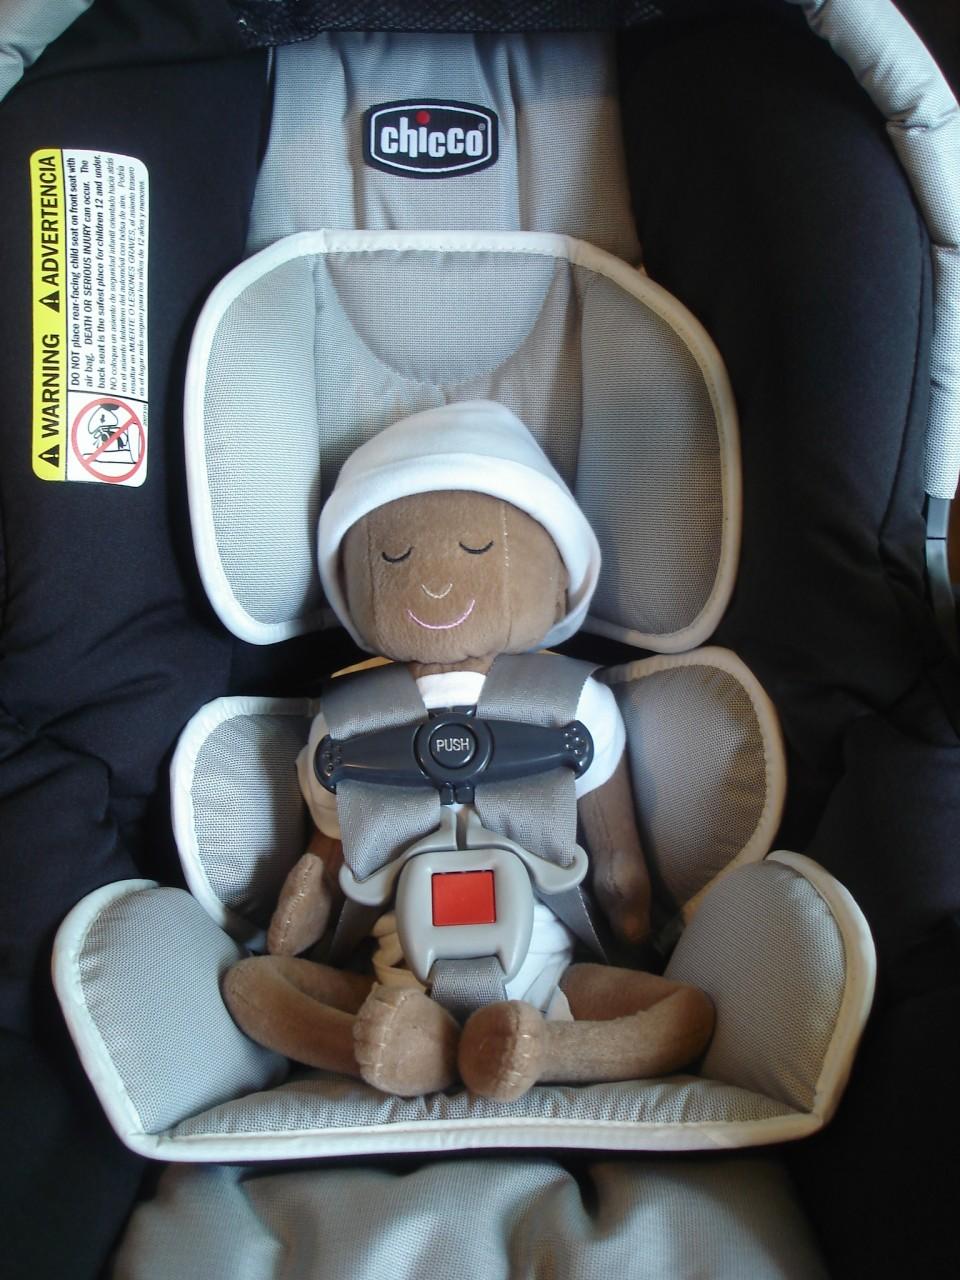 Chicco Infant Car Seat Height Limit